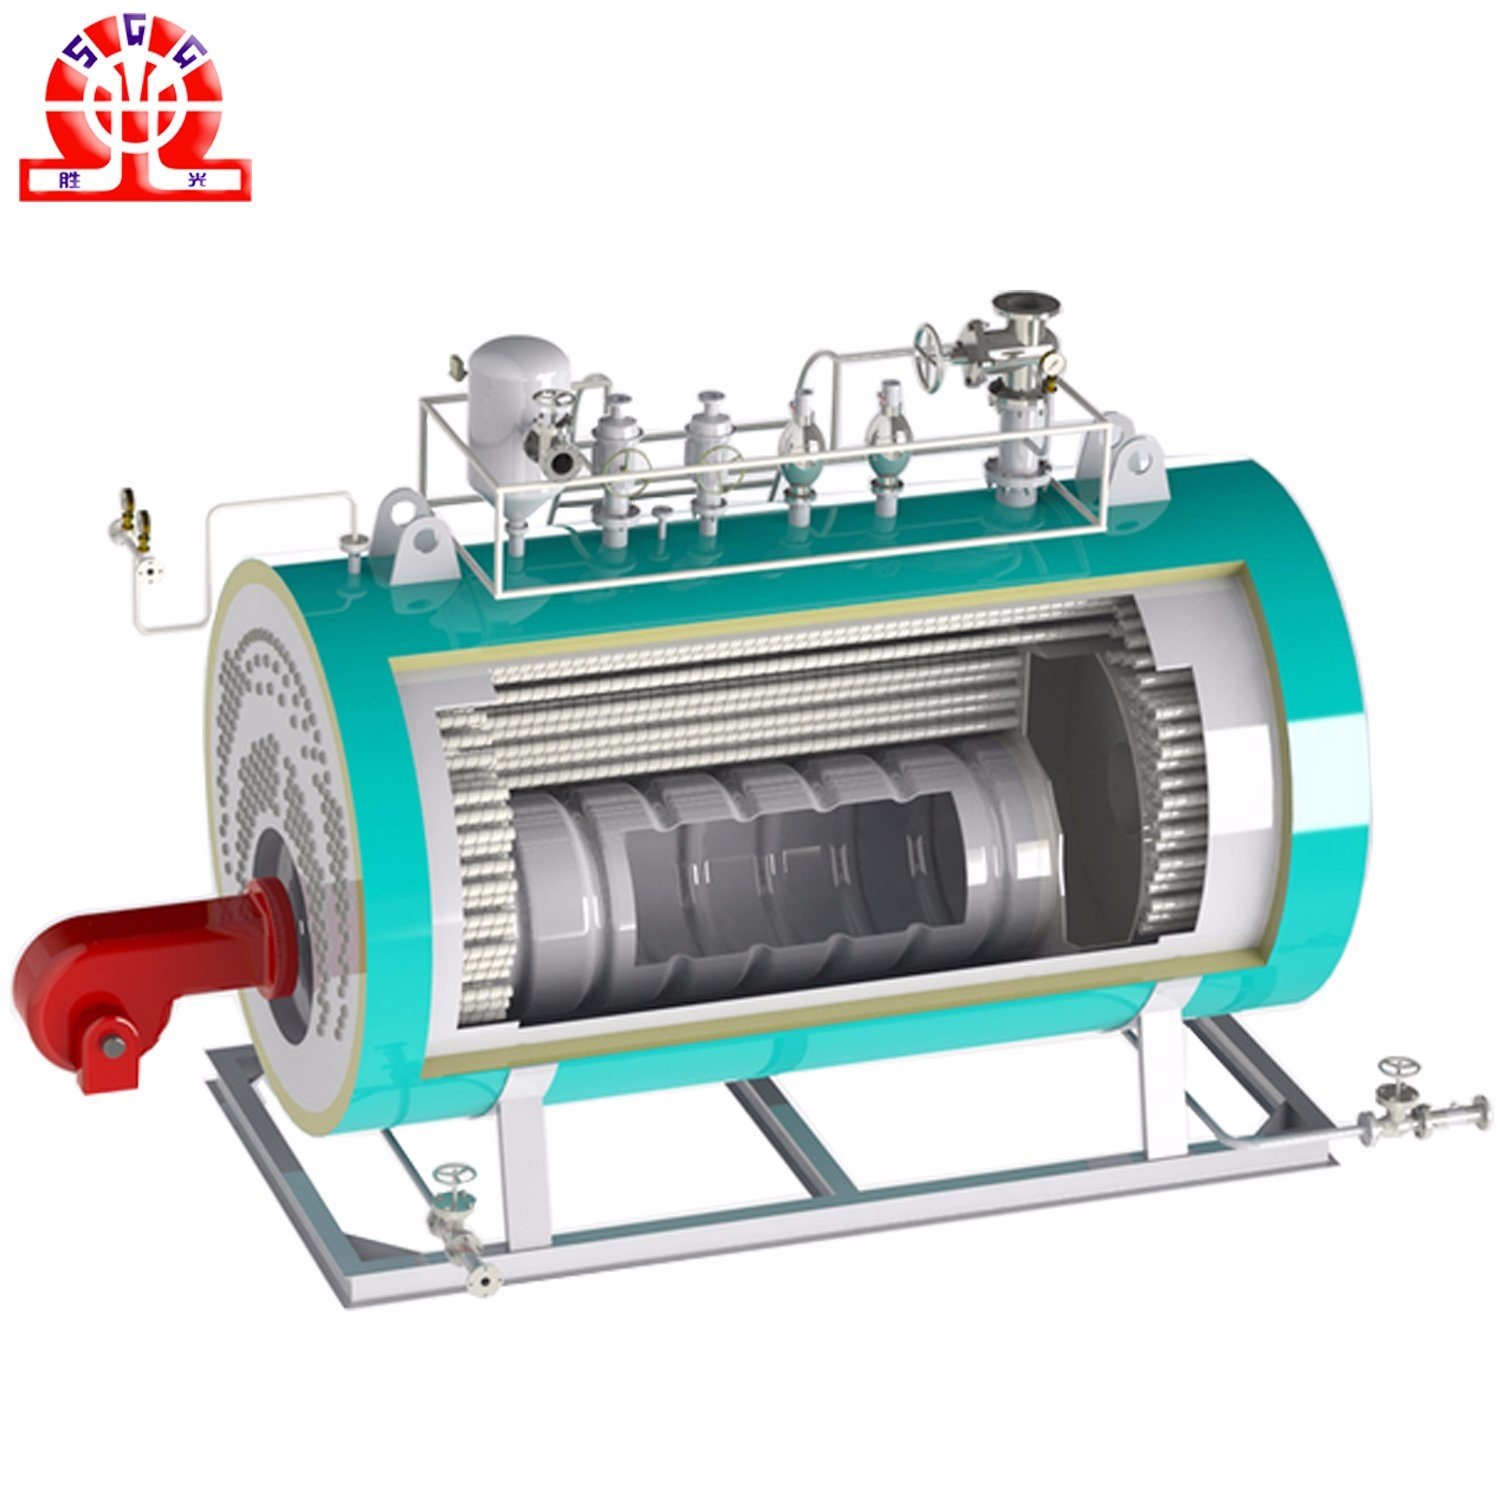 China High Efficiency Central Combustion Oil Gas Fired Hot Water ...